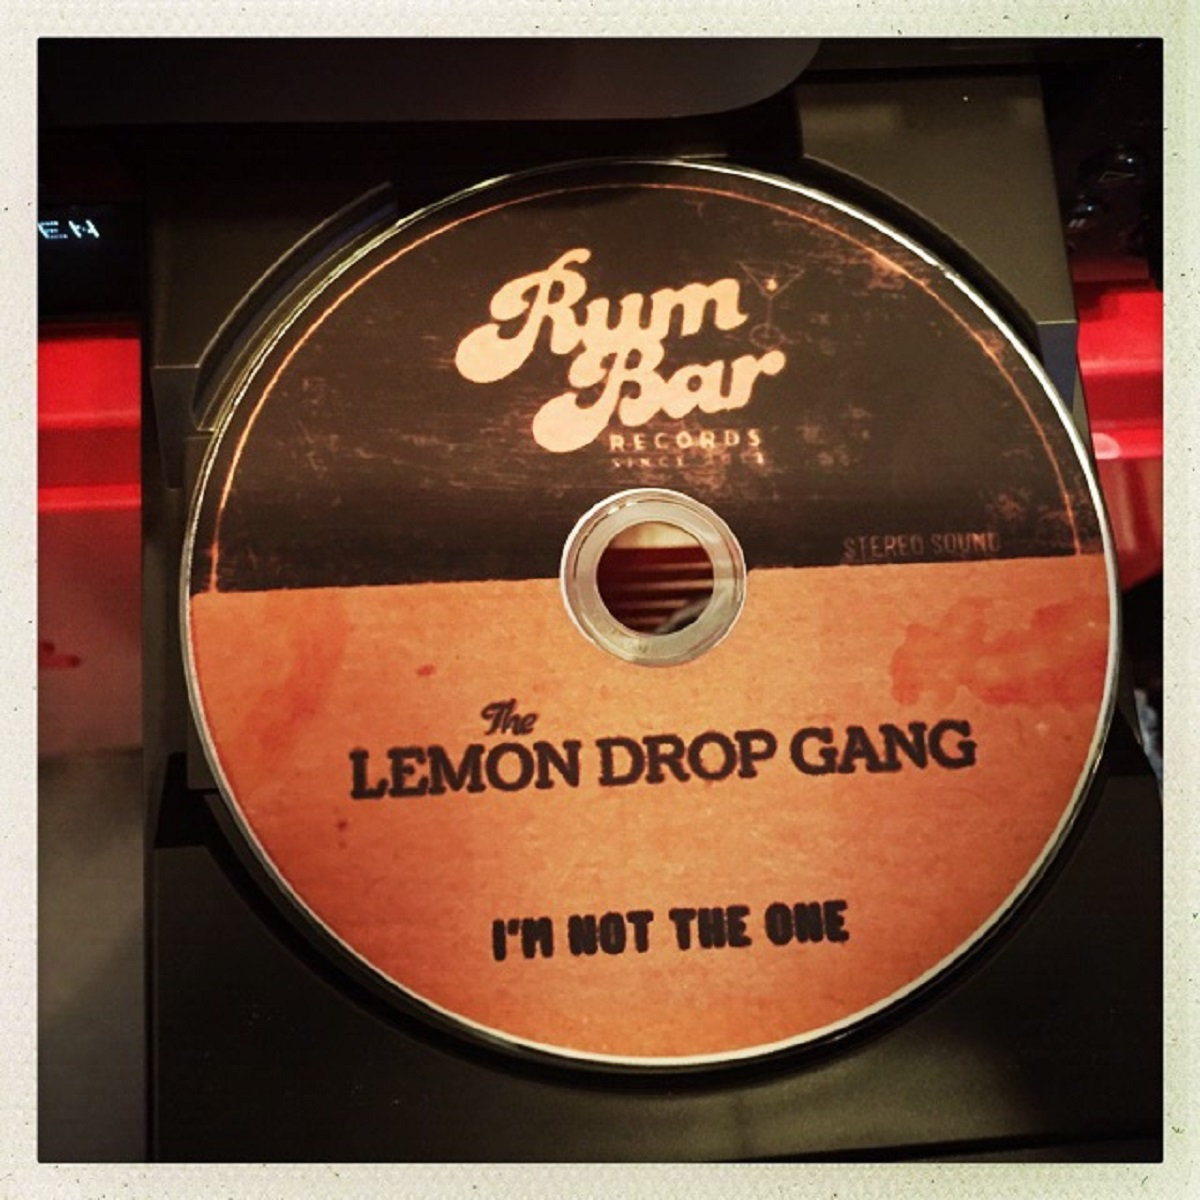 I M Not The One The Nice Price The Lemon Drop Gang Rum Bar Records